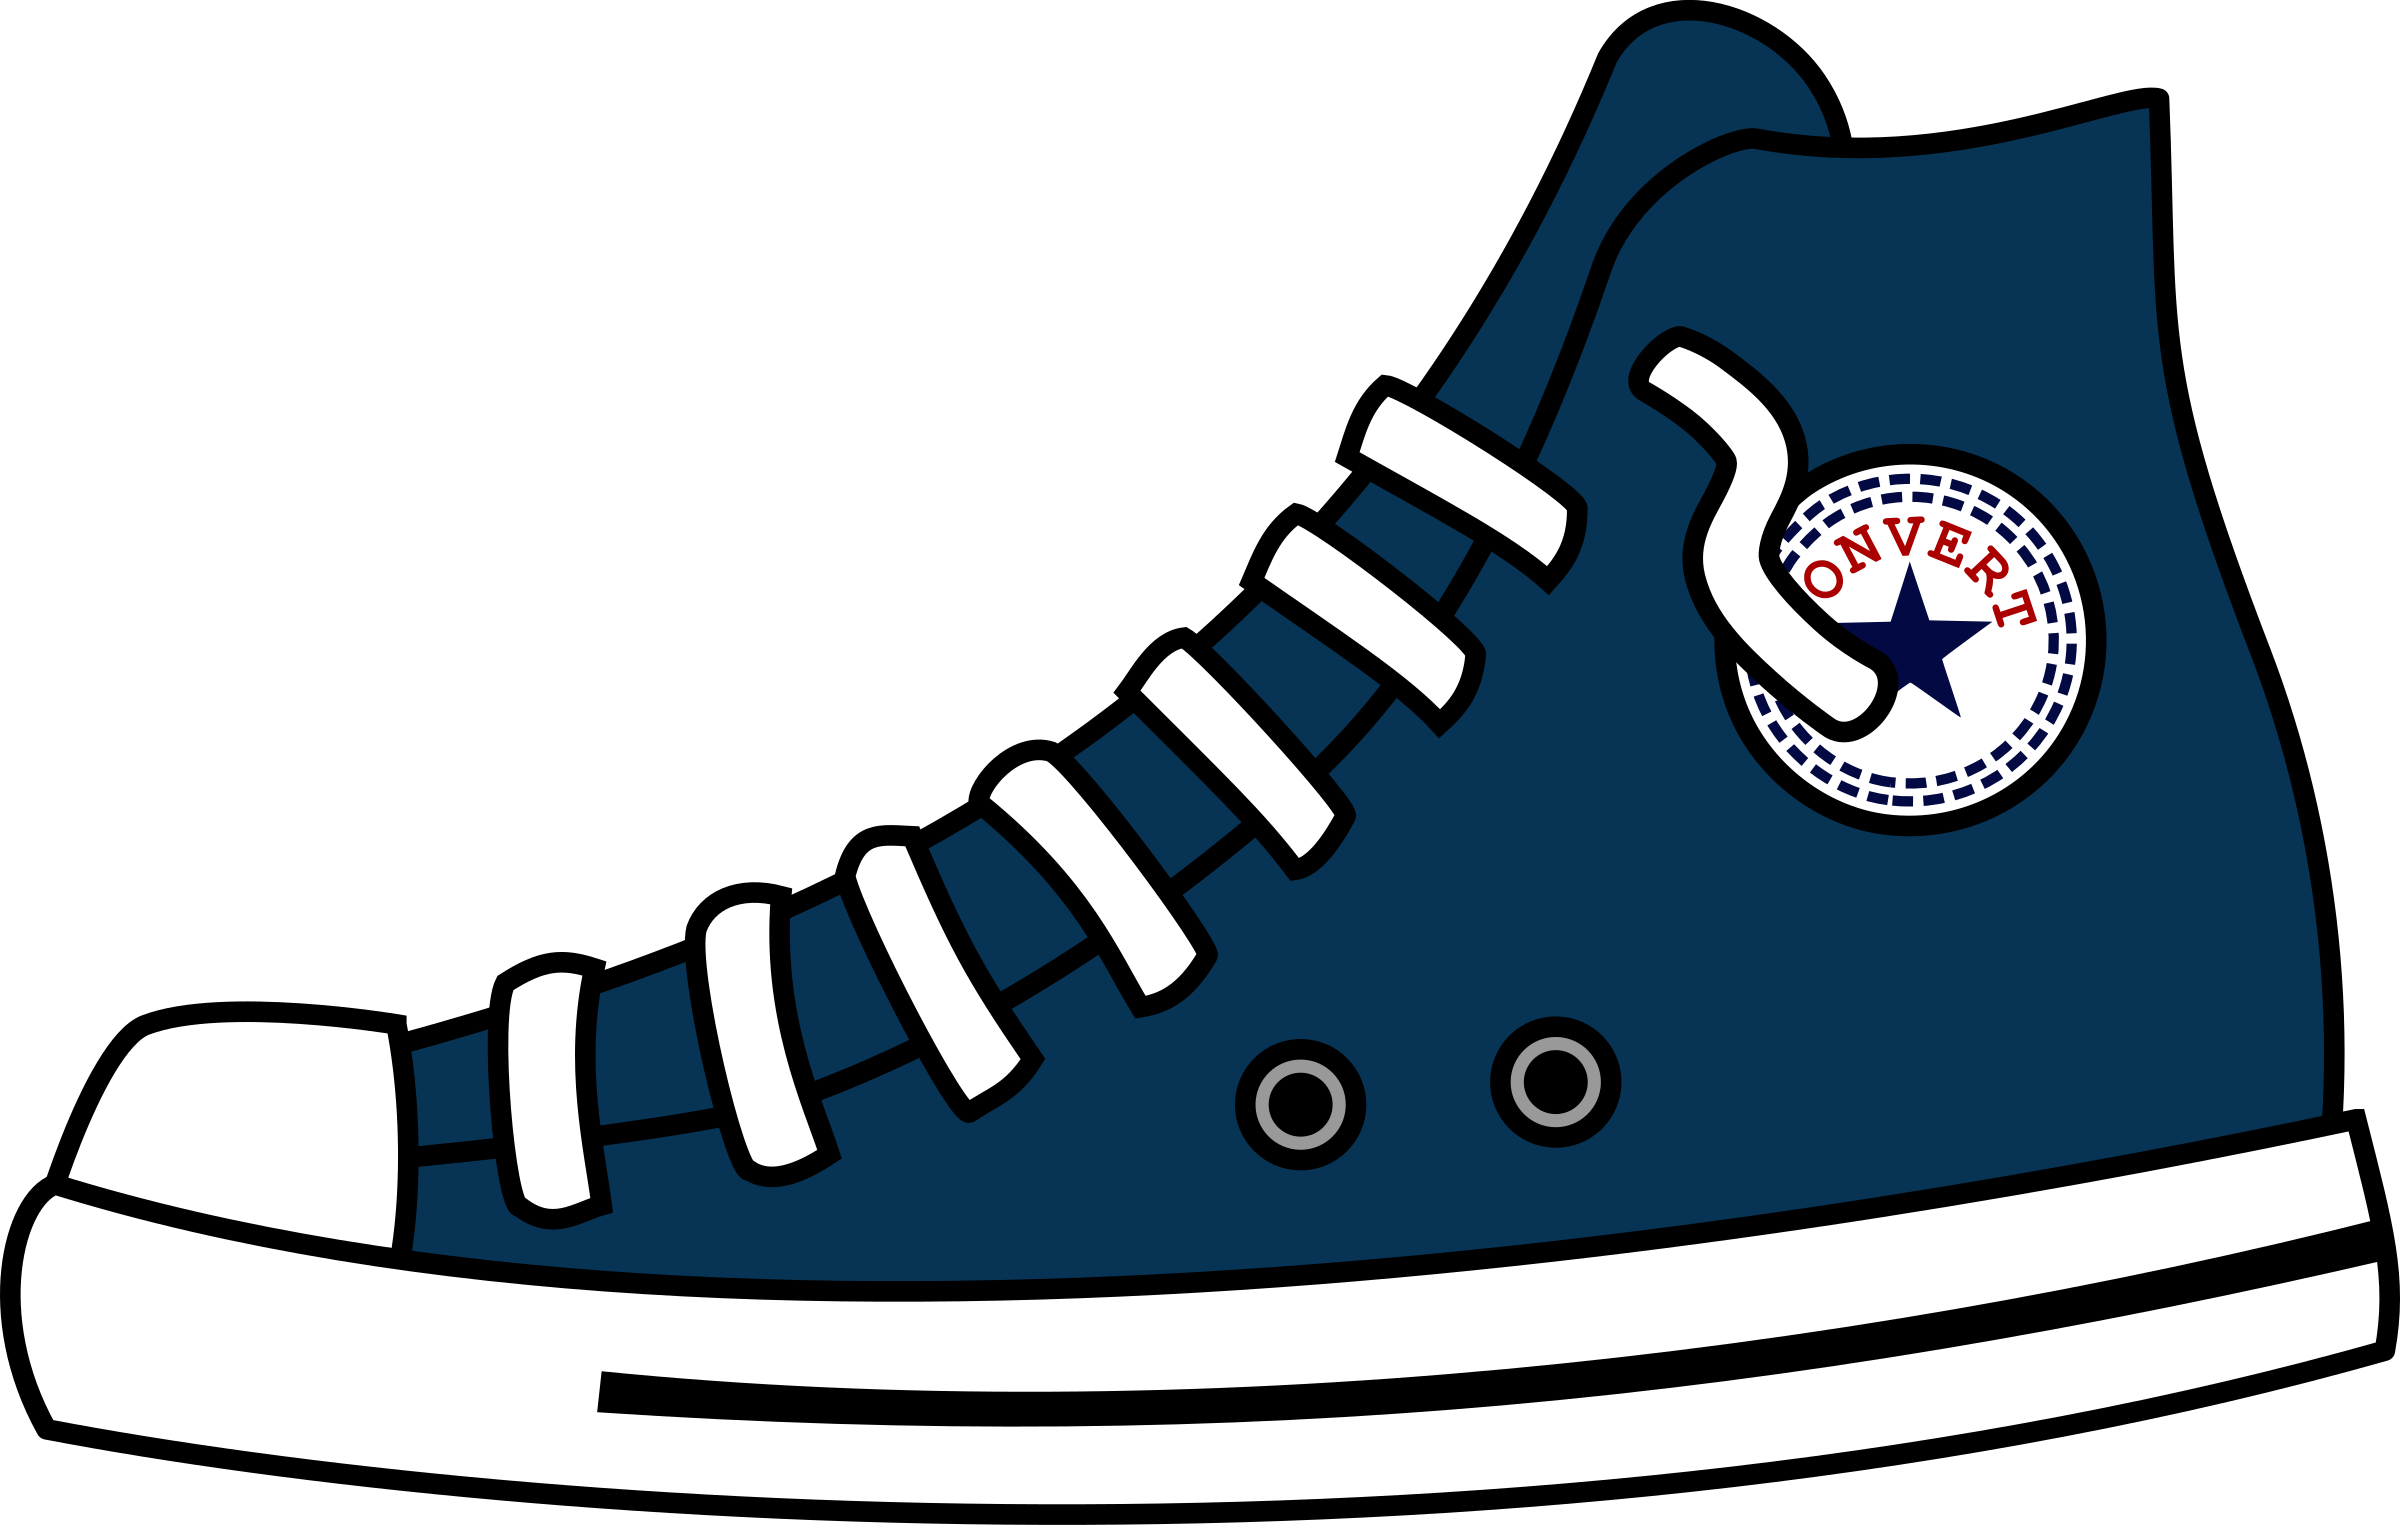 clipart stock Converse clipart. High top shoes big